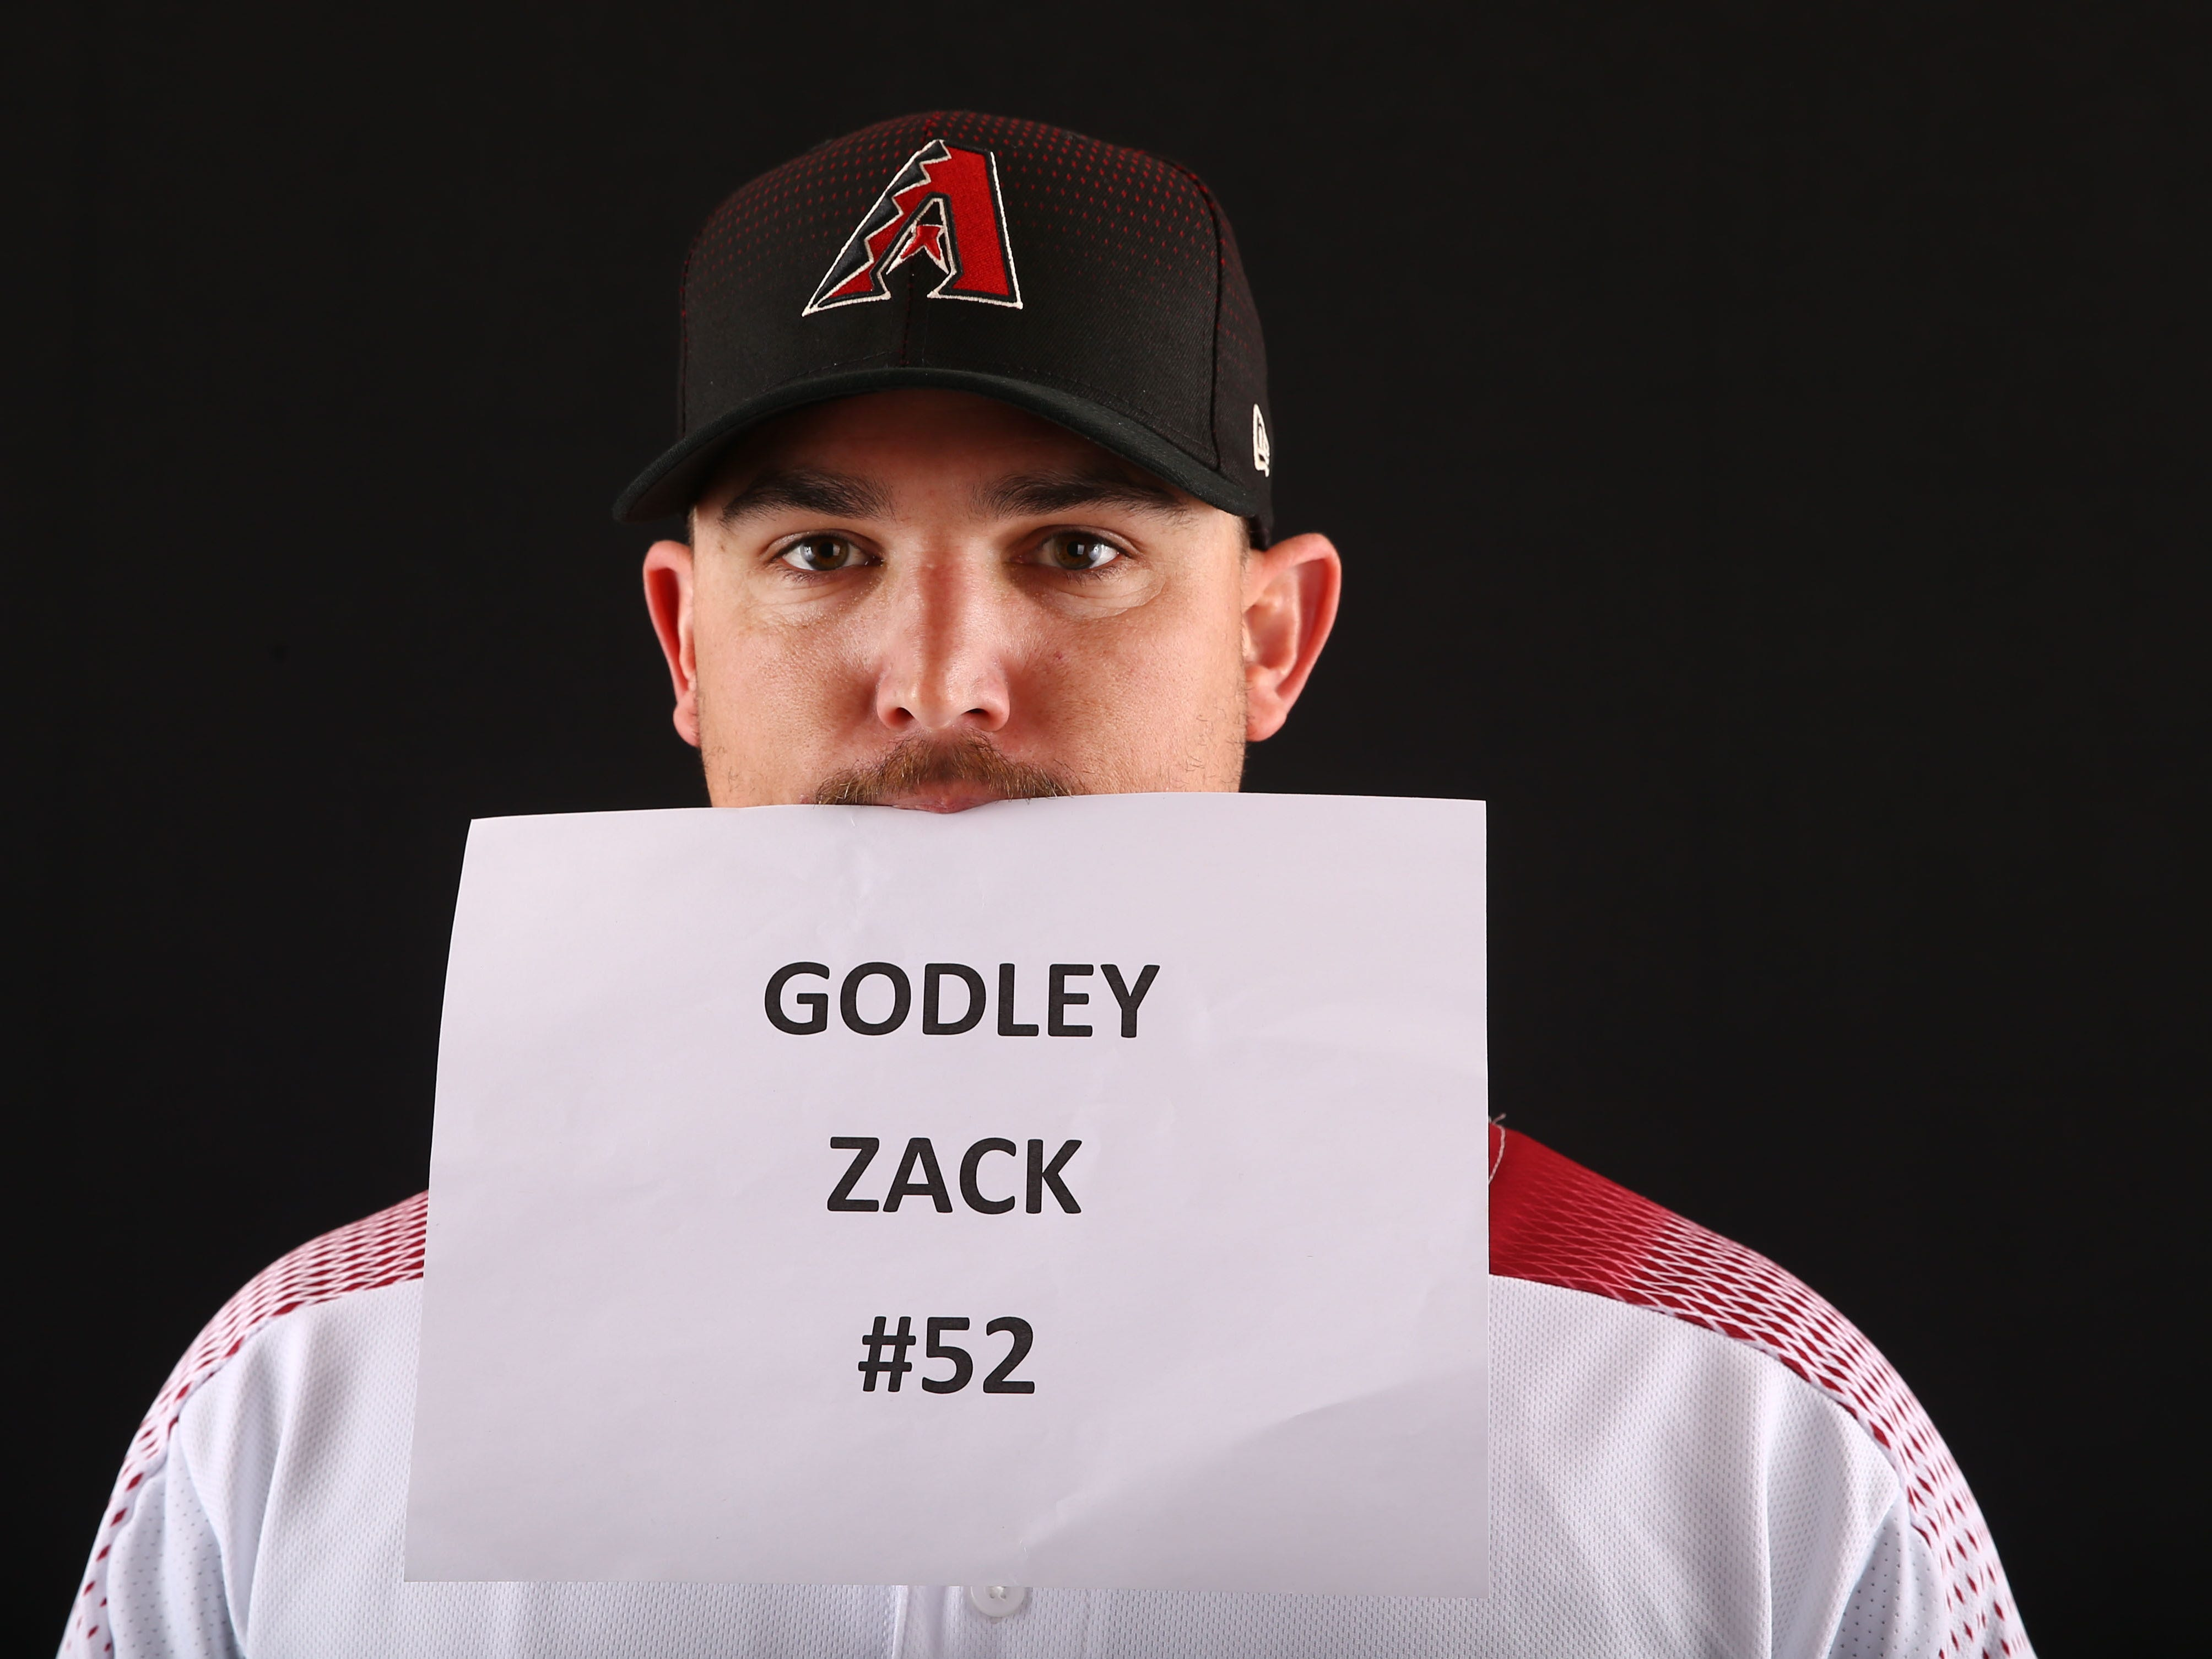 Zack Godley of the Arizona Diamondbacks poses for a photo during the annual Spring Training Photo Day on Feb. 20 at Salt River Fields in Scottsdale, Ariz.